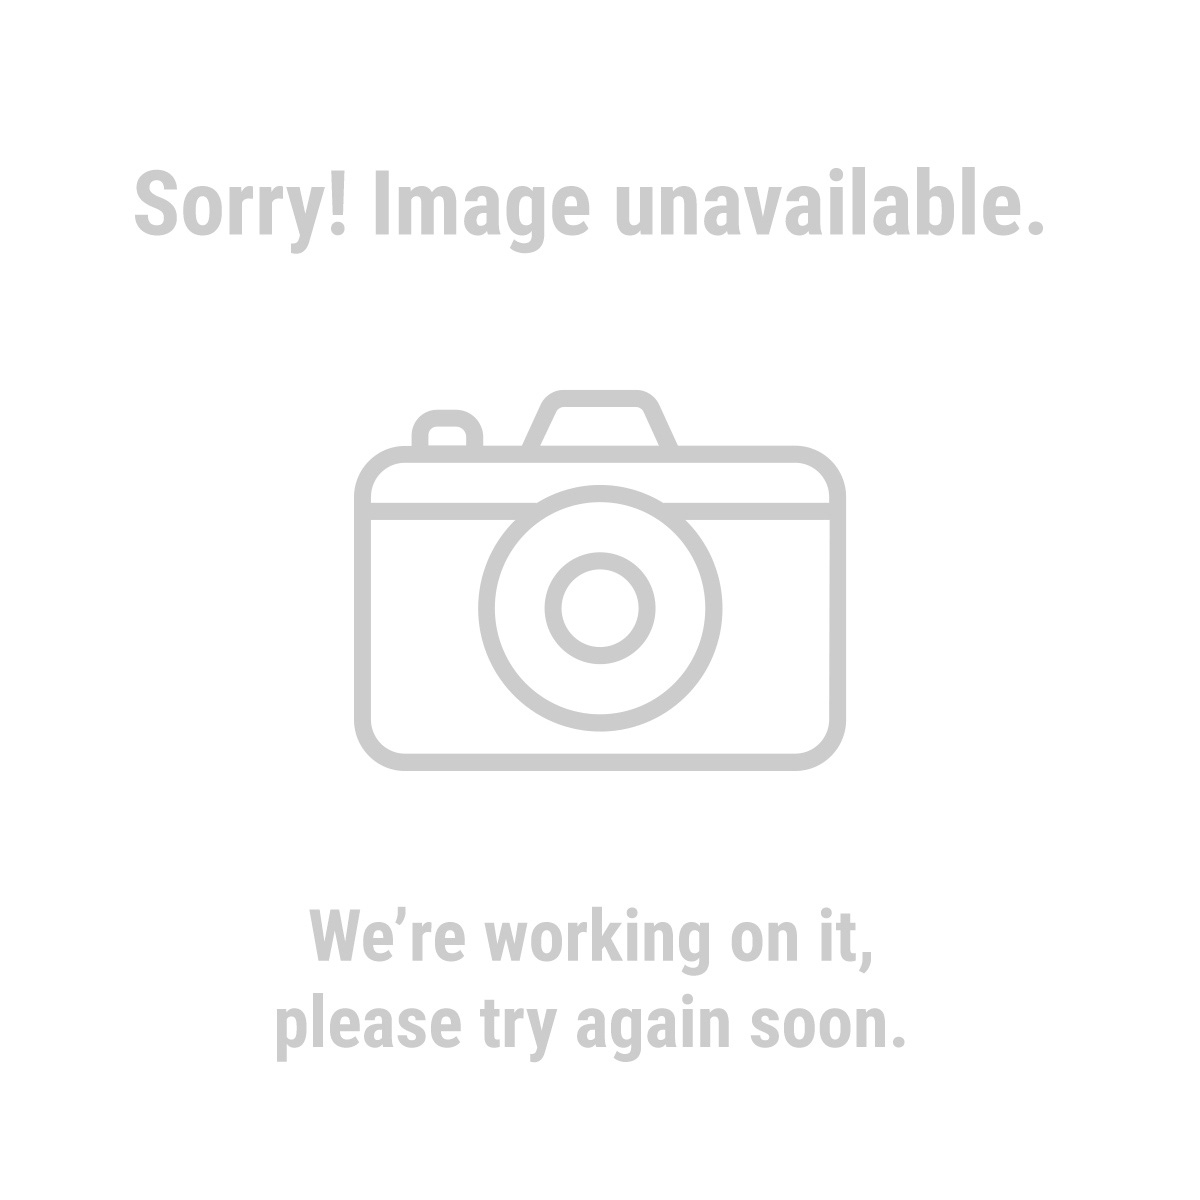 HFT® 60442 49 ft. x 29 ft. 4 in. Reflective Heavy Duty Silver Tarp